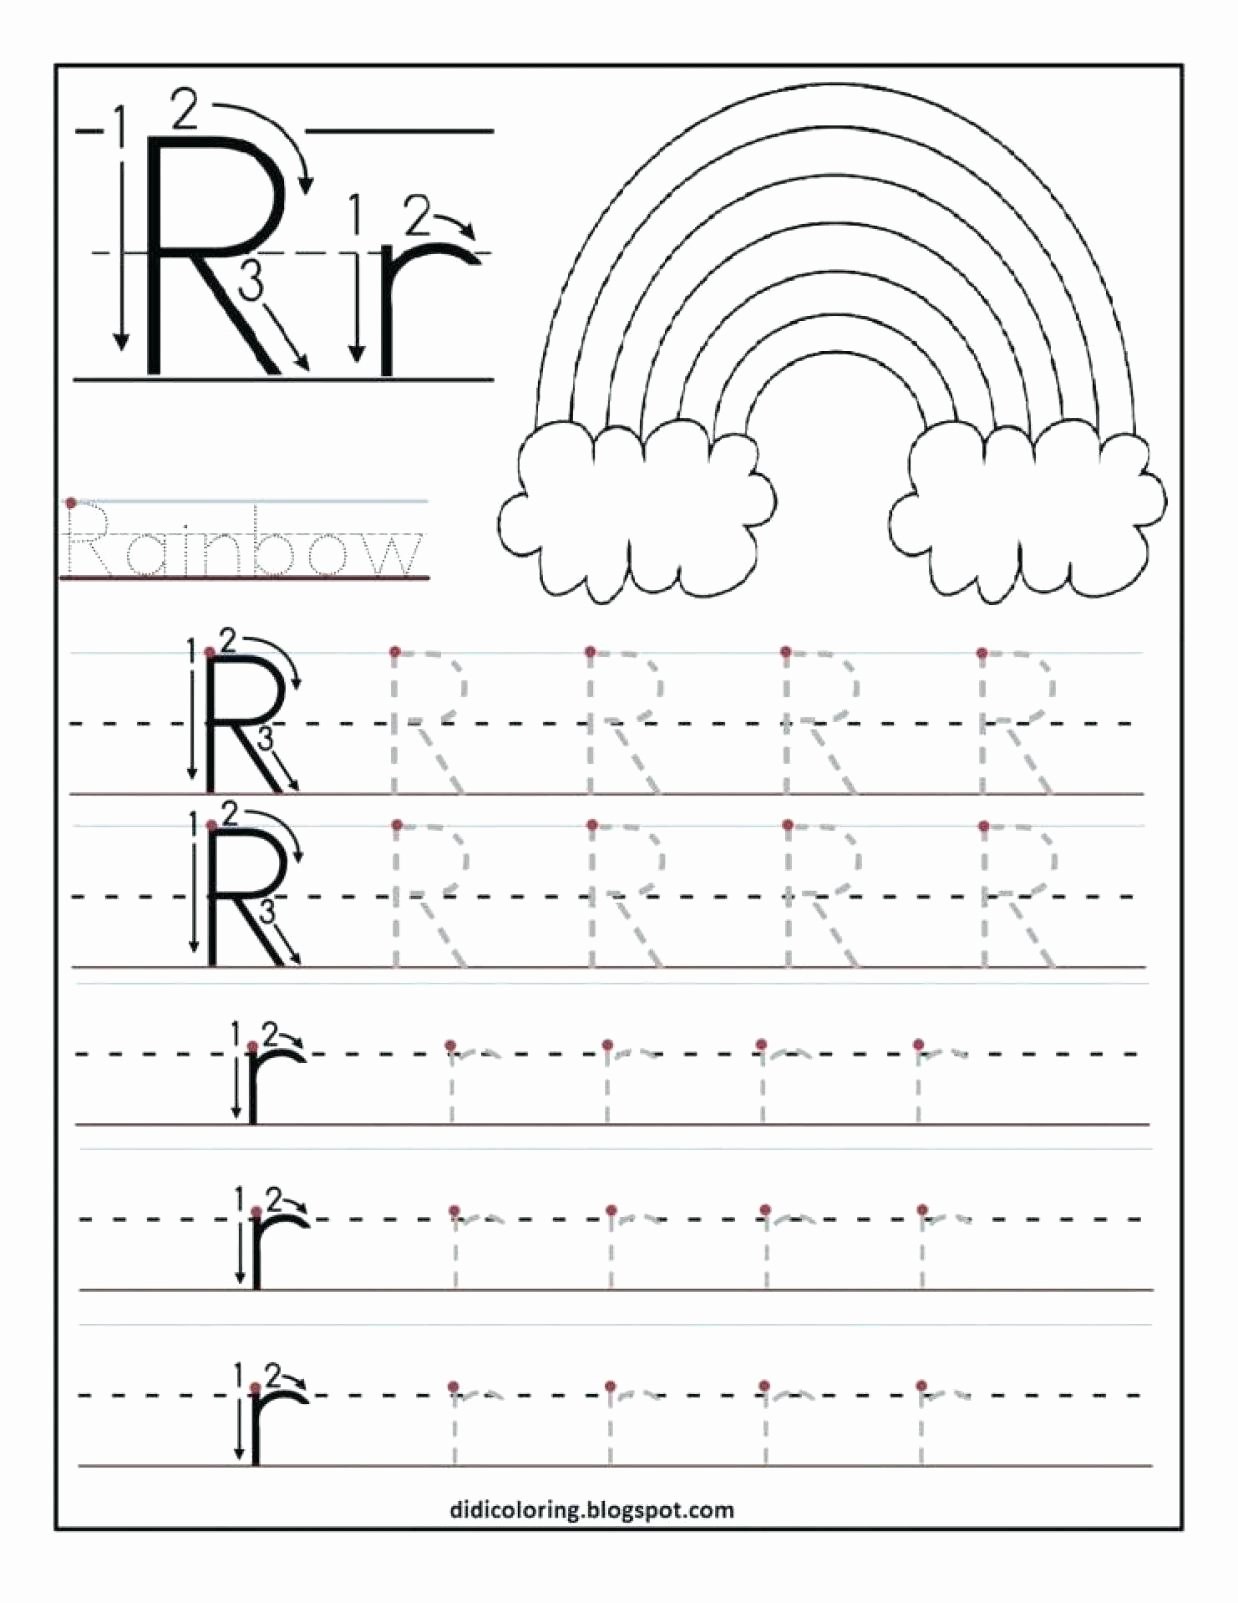 Worksheets for Preschoolers Learning to Write Lovely Worksheets Letter forming Worksheets Printable and